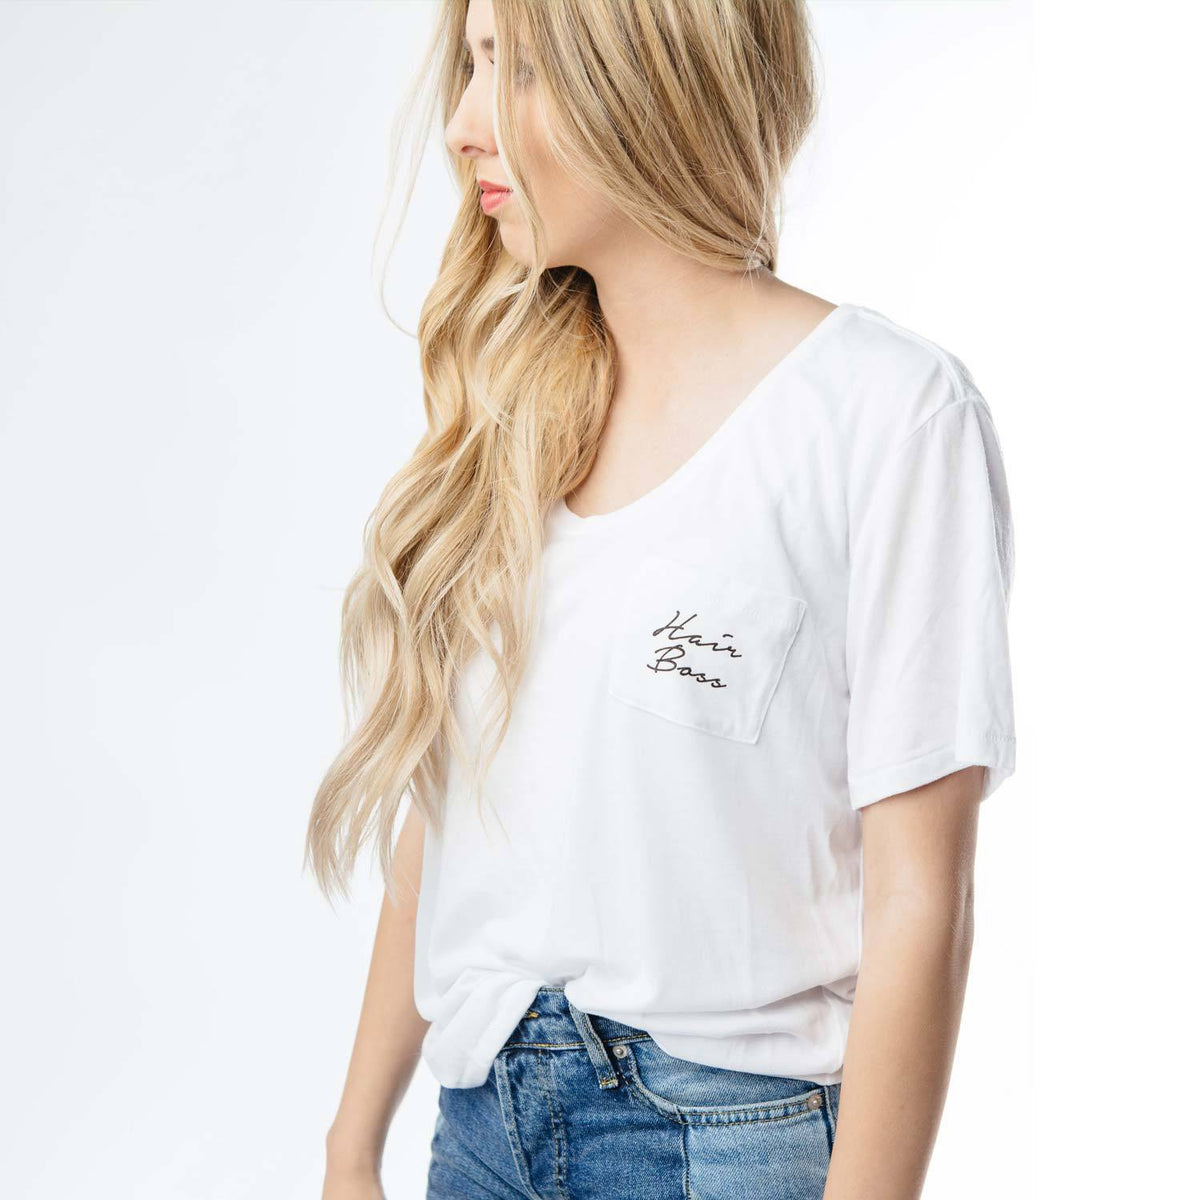 Laced T-Shirt Hair Boss (Women's)